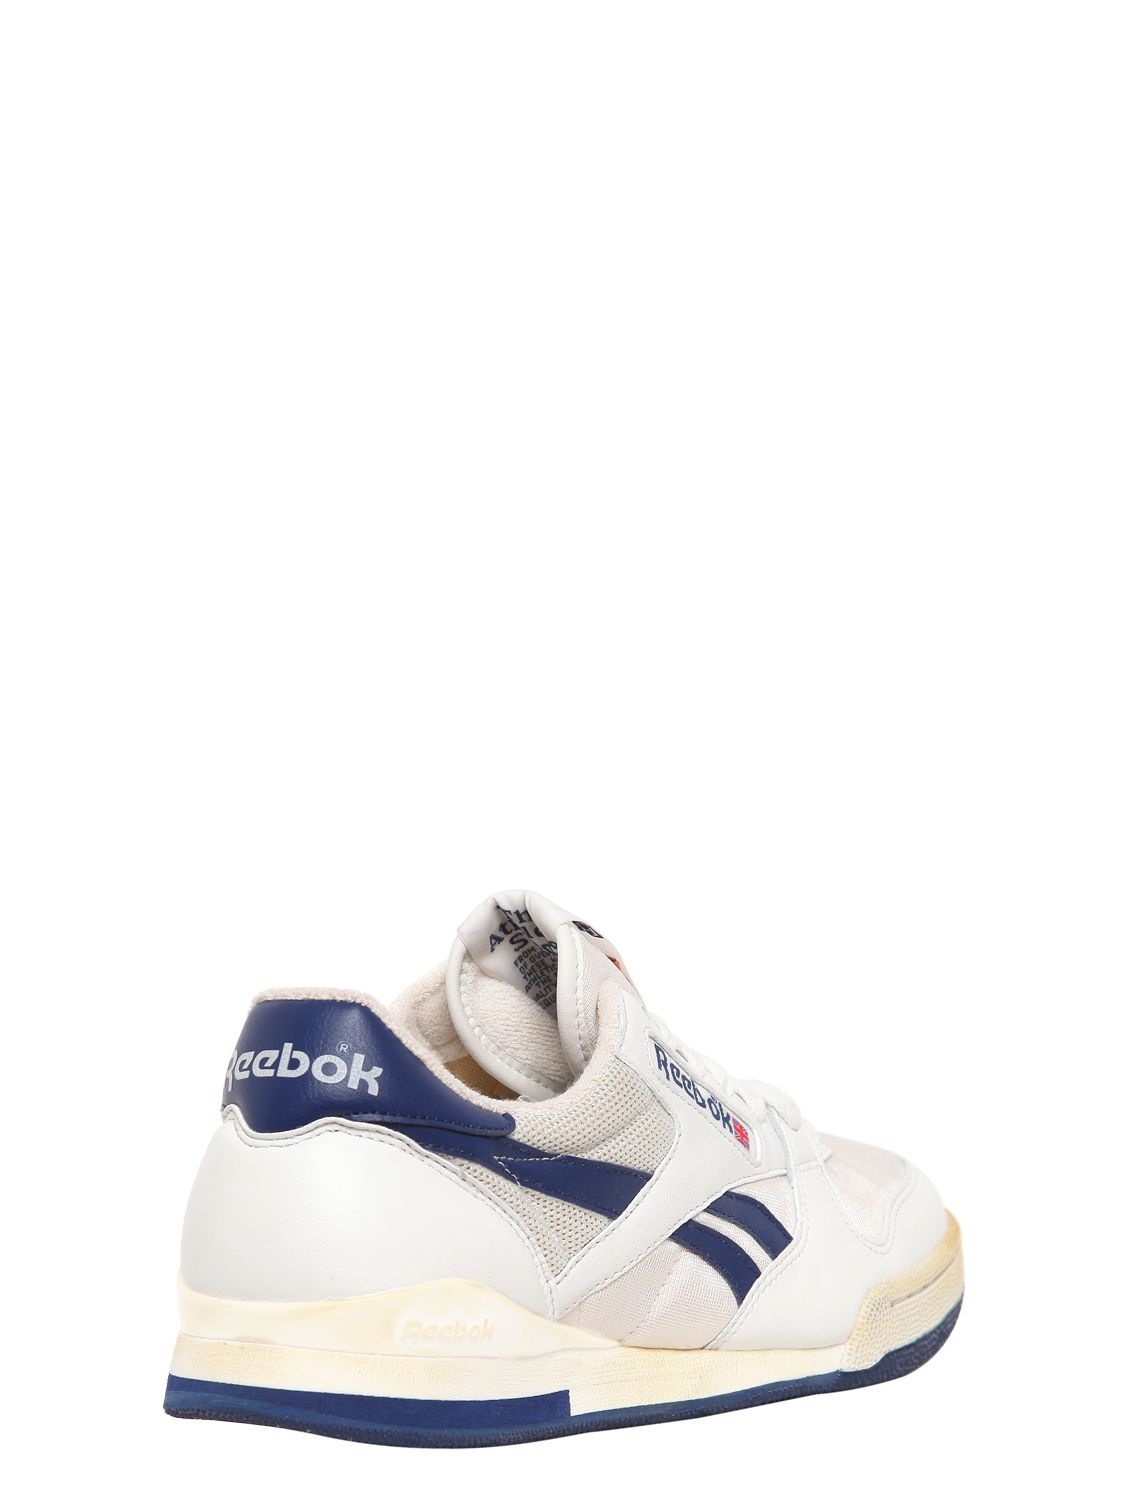 Lyst - Reebok 90 Leather Mesh Tennis Sneakers in Blue for Men e268edd4f